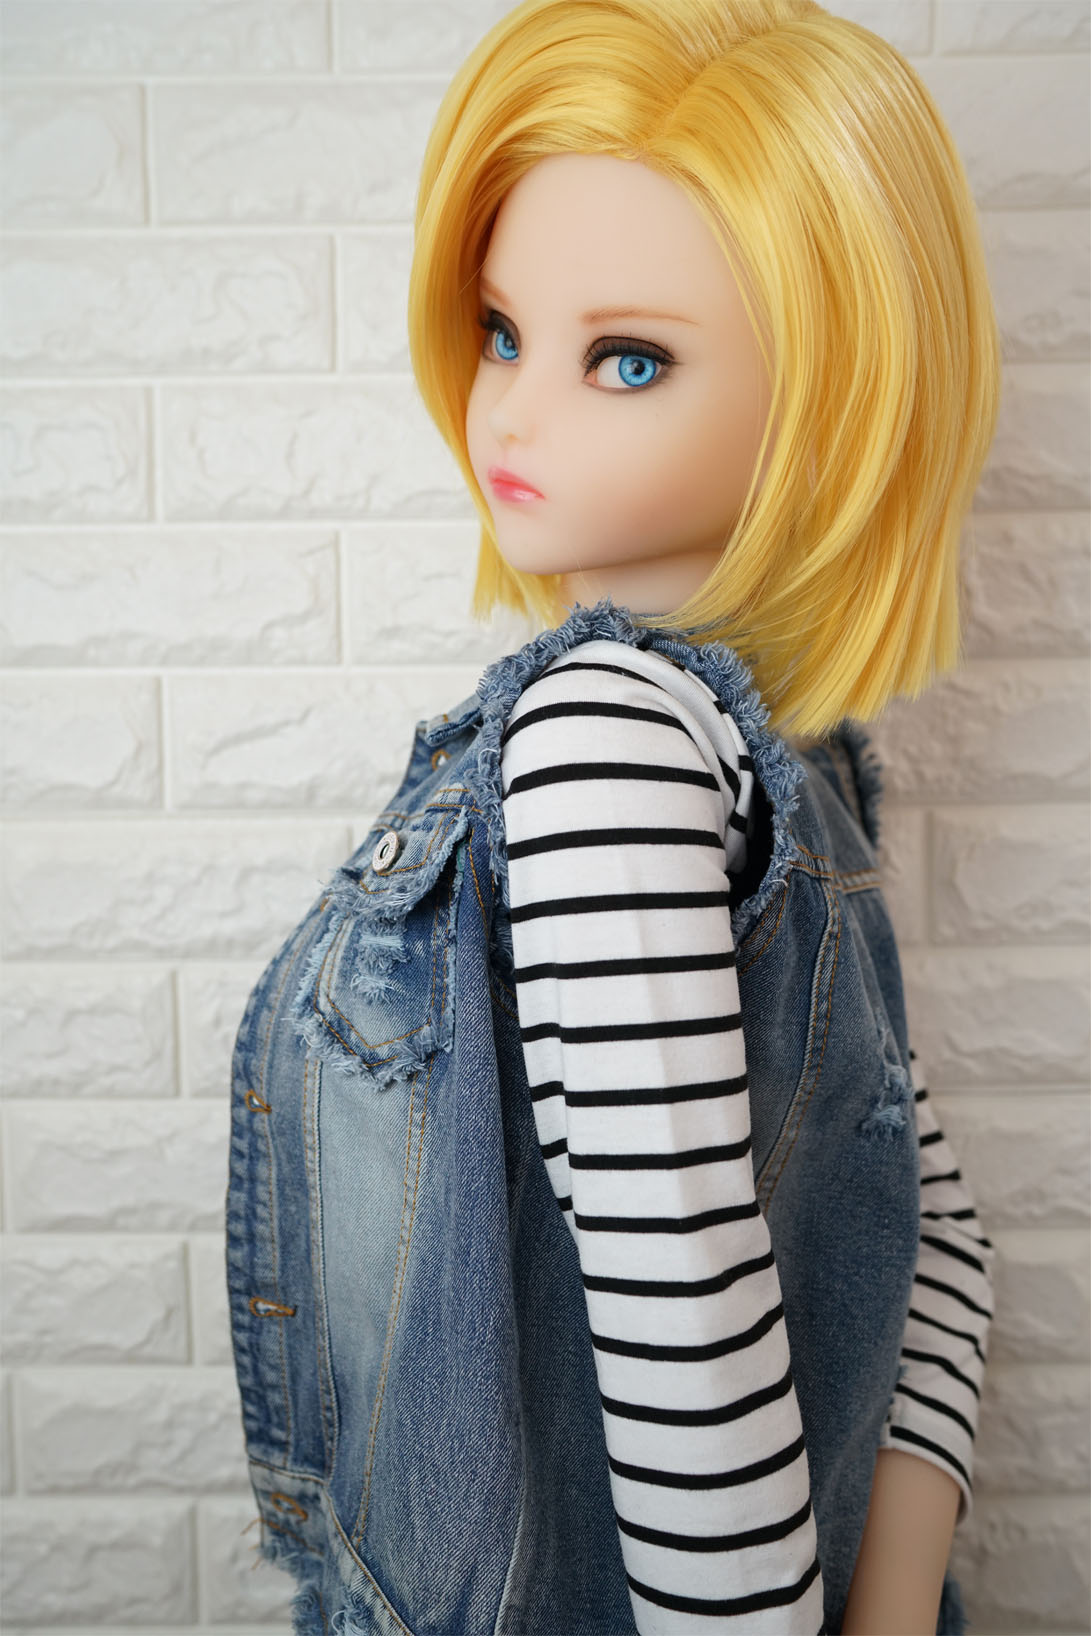 Android 18 sex doll